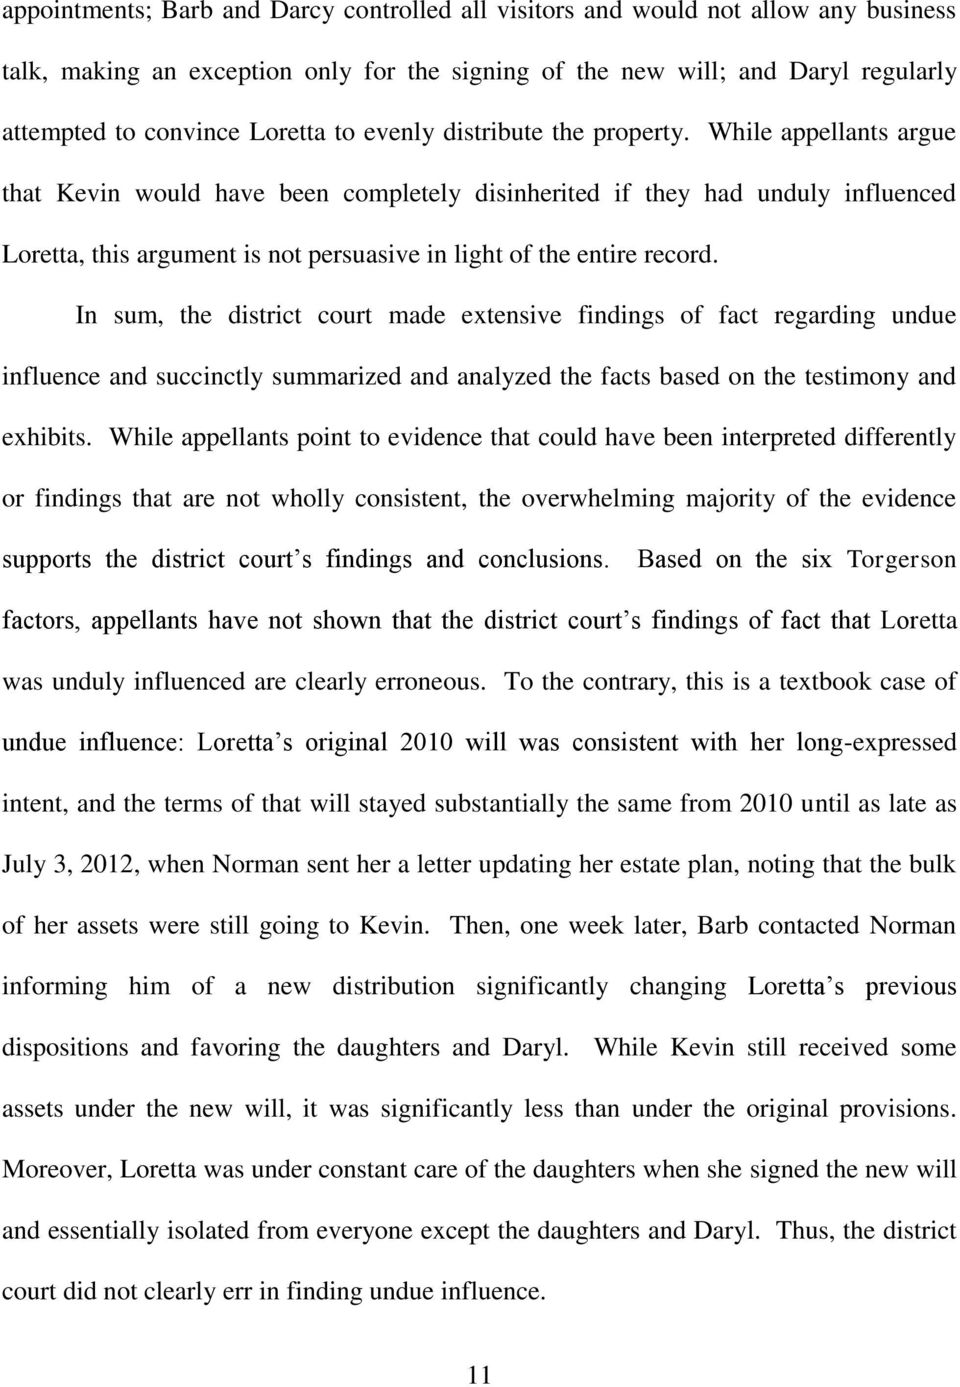 While appellants argue that Kevin would have been completely disinherited if they had unduly influenced Loretta, this argument is not persuasive in light of the entire record.